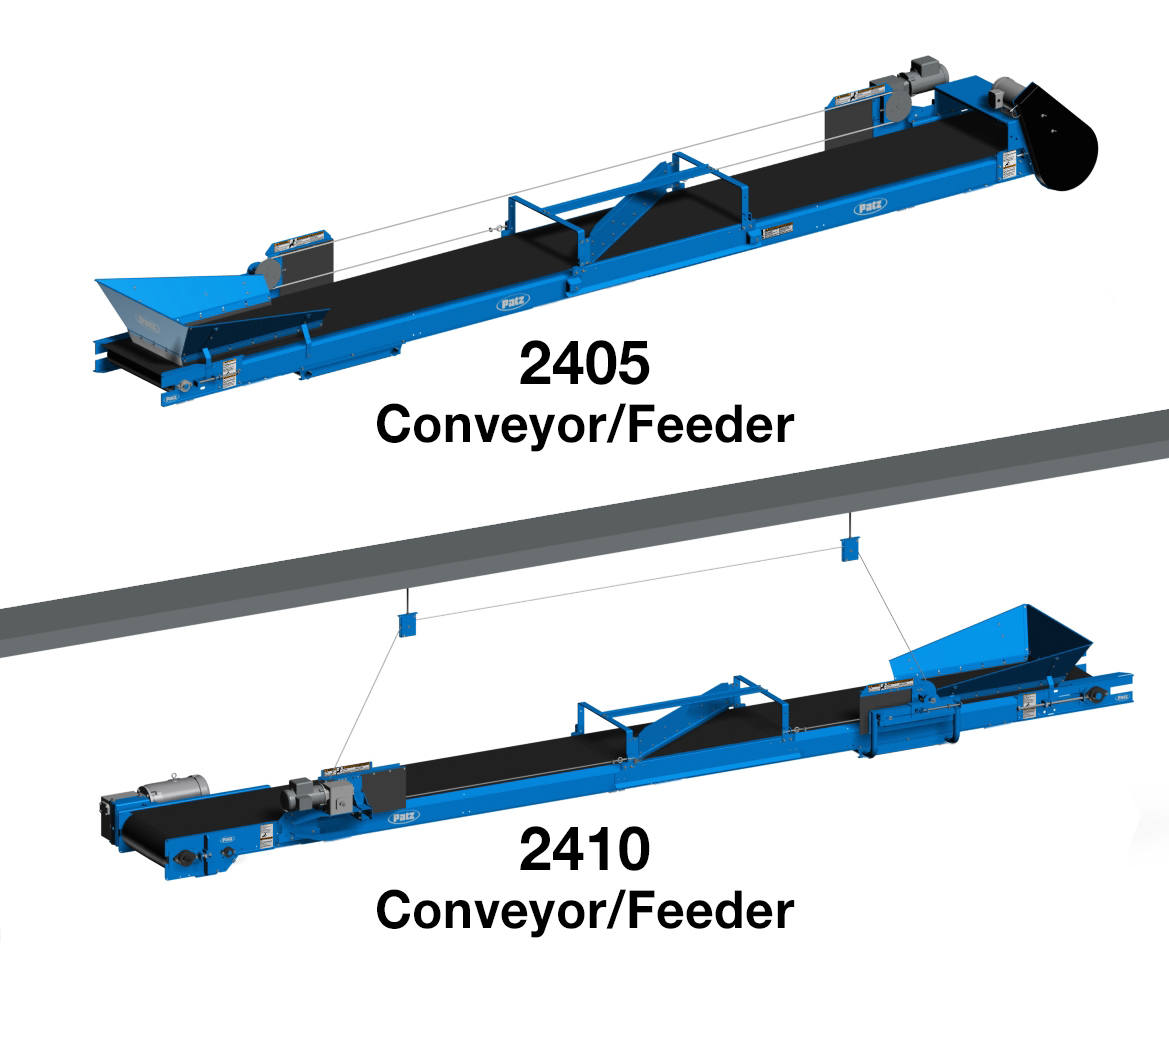 Patz 2405-2410 Conveyor-Feeder